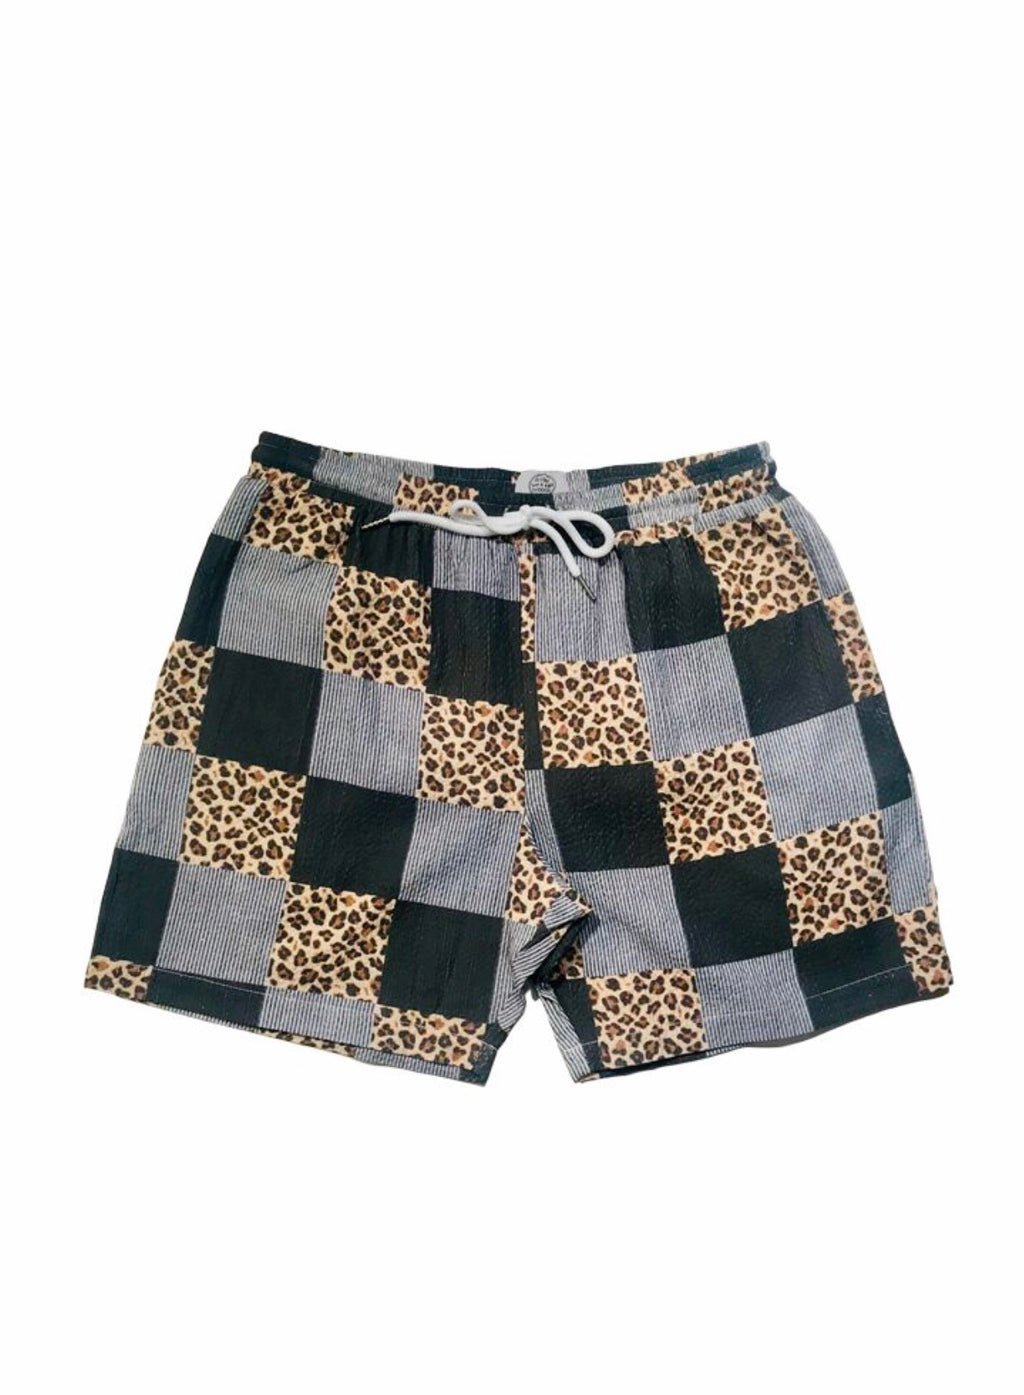 Leopard Print Seersucker Hybrid Swim Trunks - Grey/Black